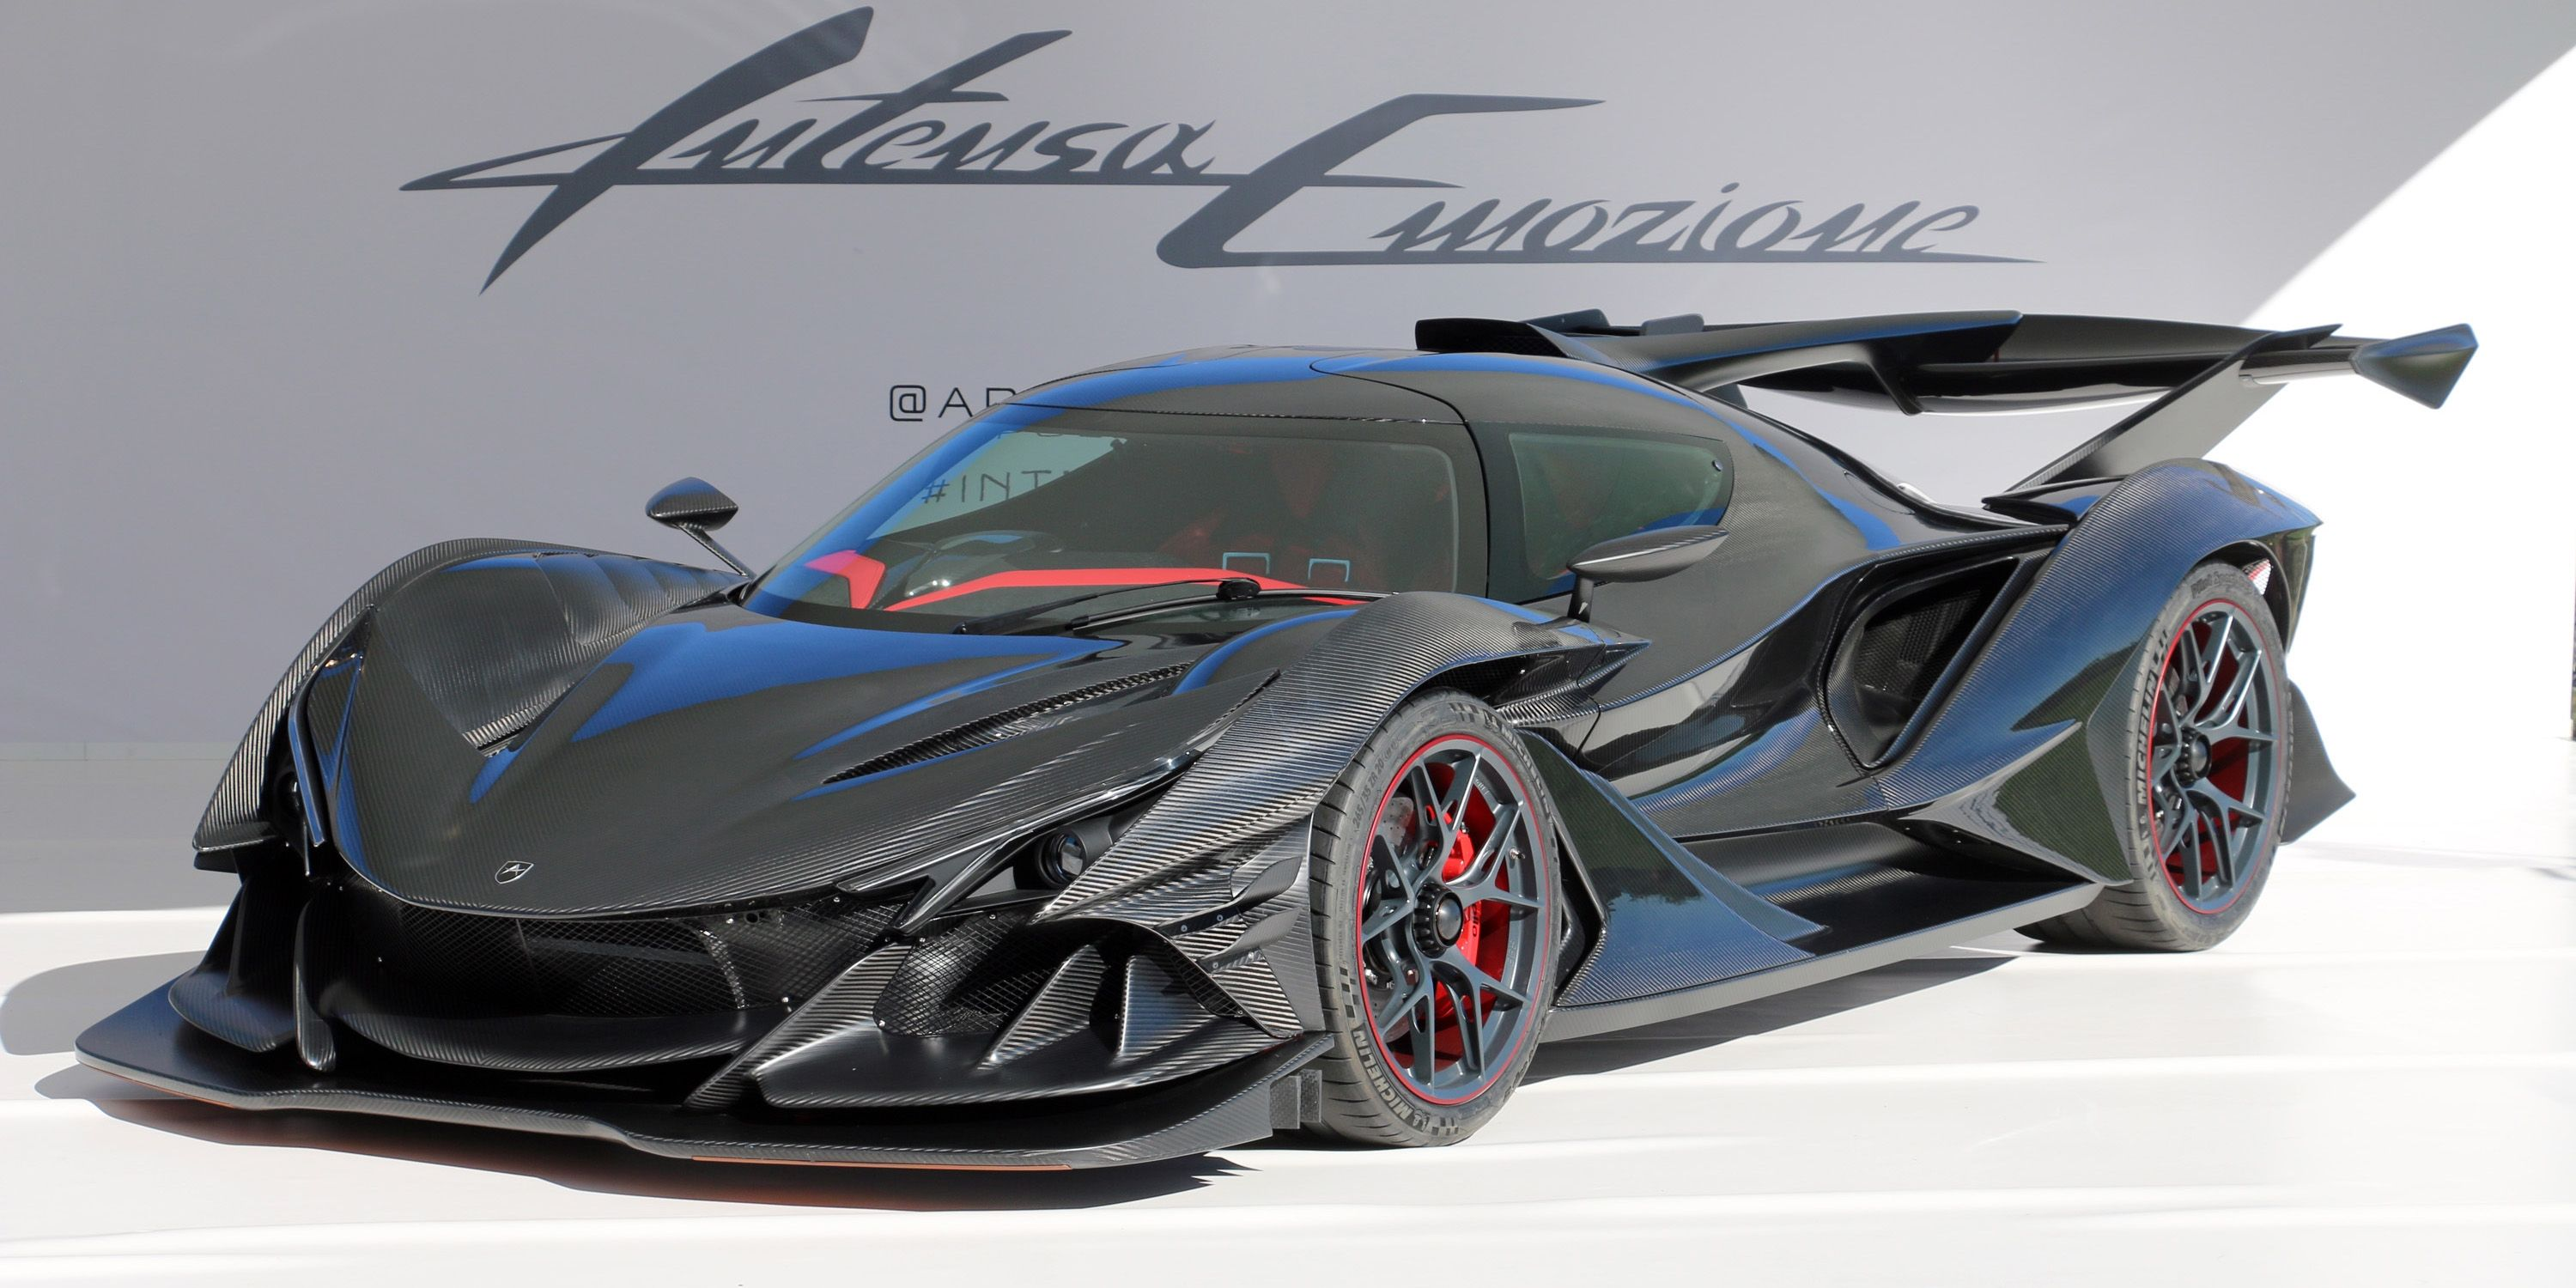 Car Wallpapers Reddit Apollo Ie Is A Full Carbon Full V12 780 Hp Weapon